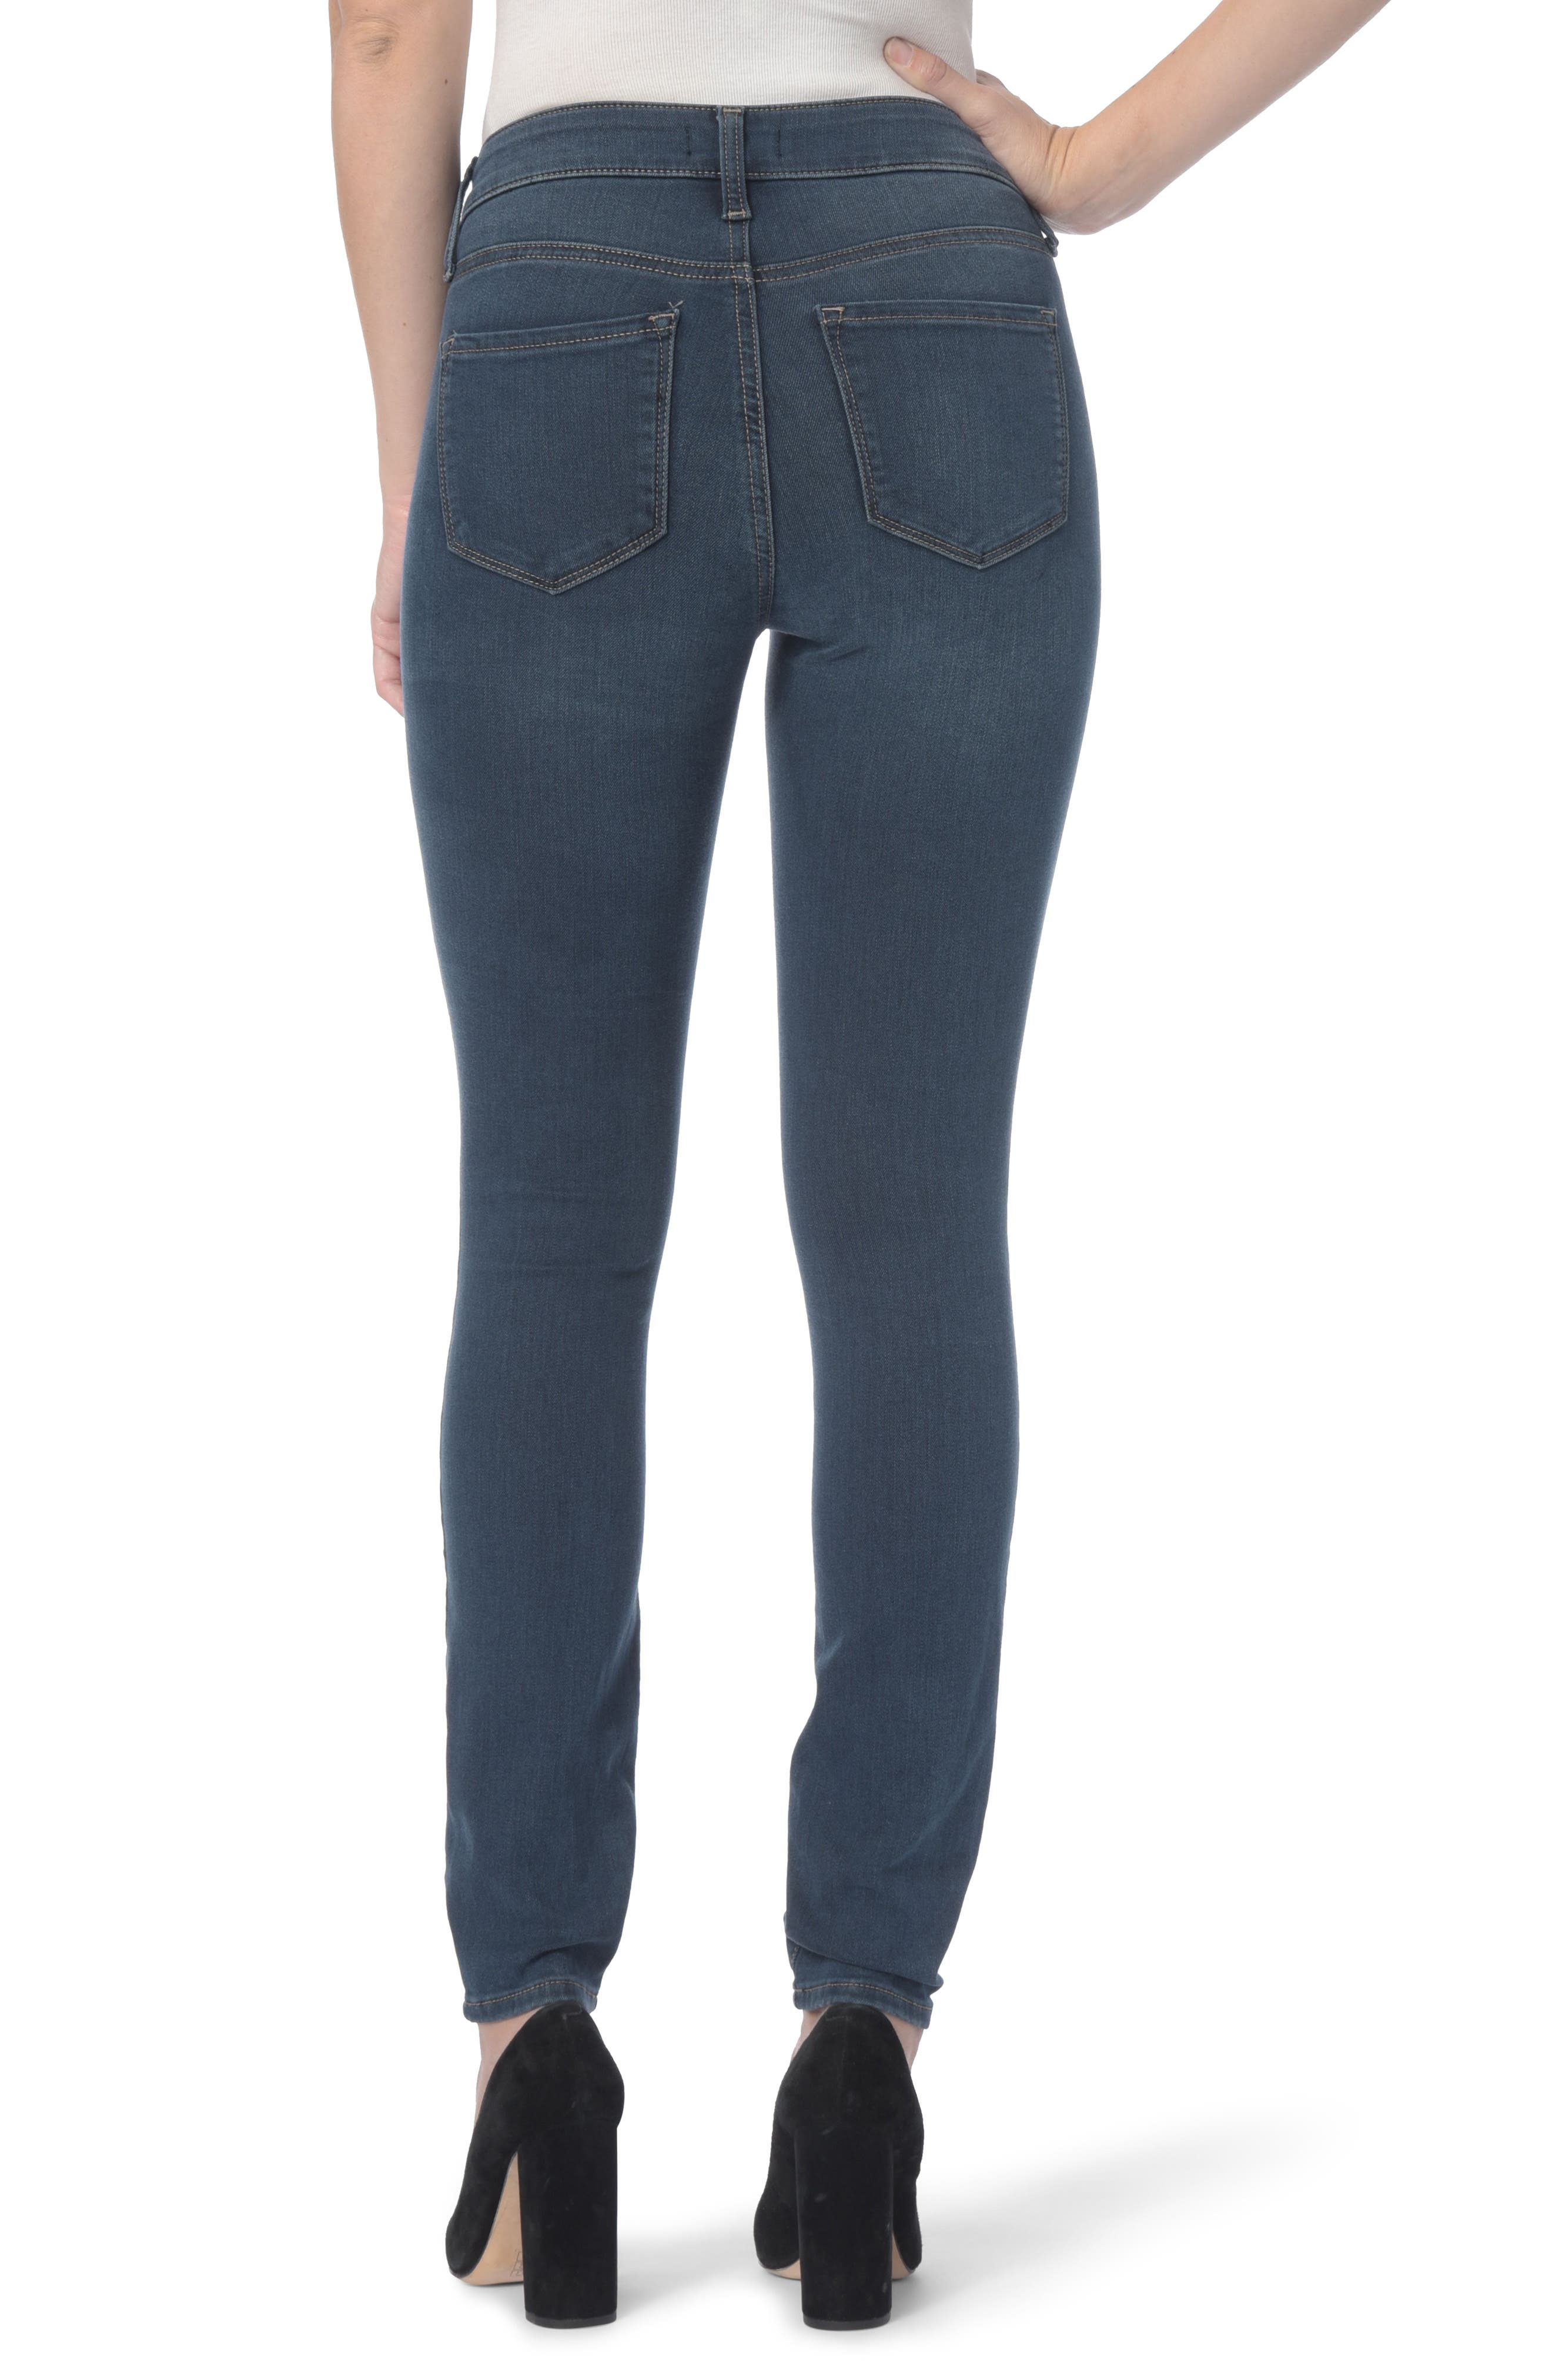 Ami Stretch Super Skinny Jeans,                             Alternate thumbnail 2, color,                             Rome